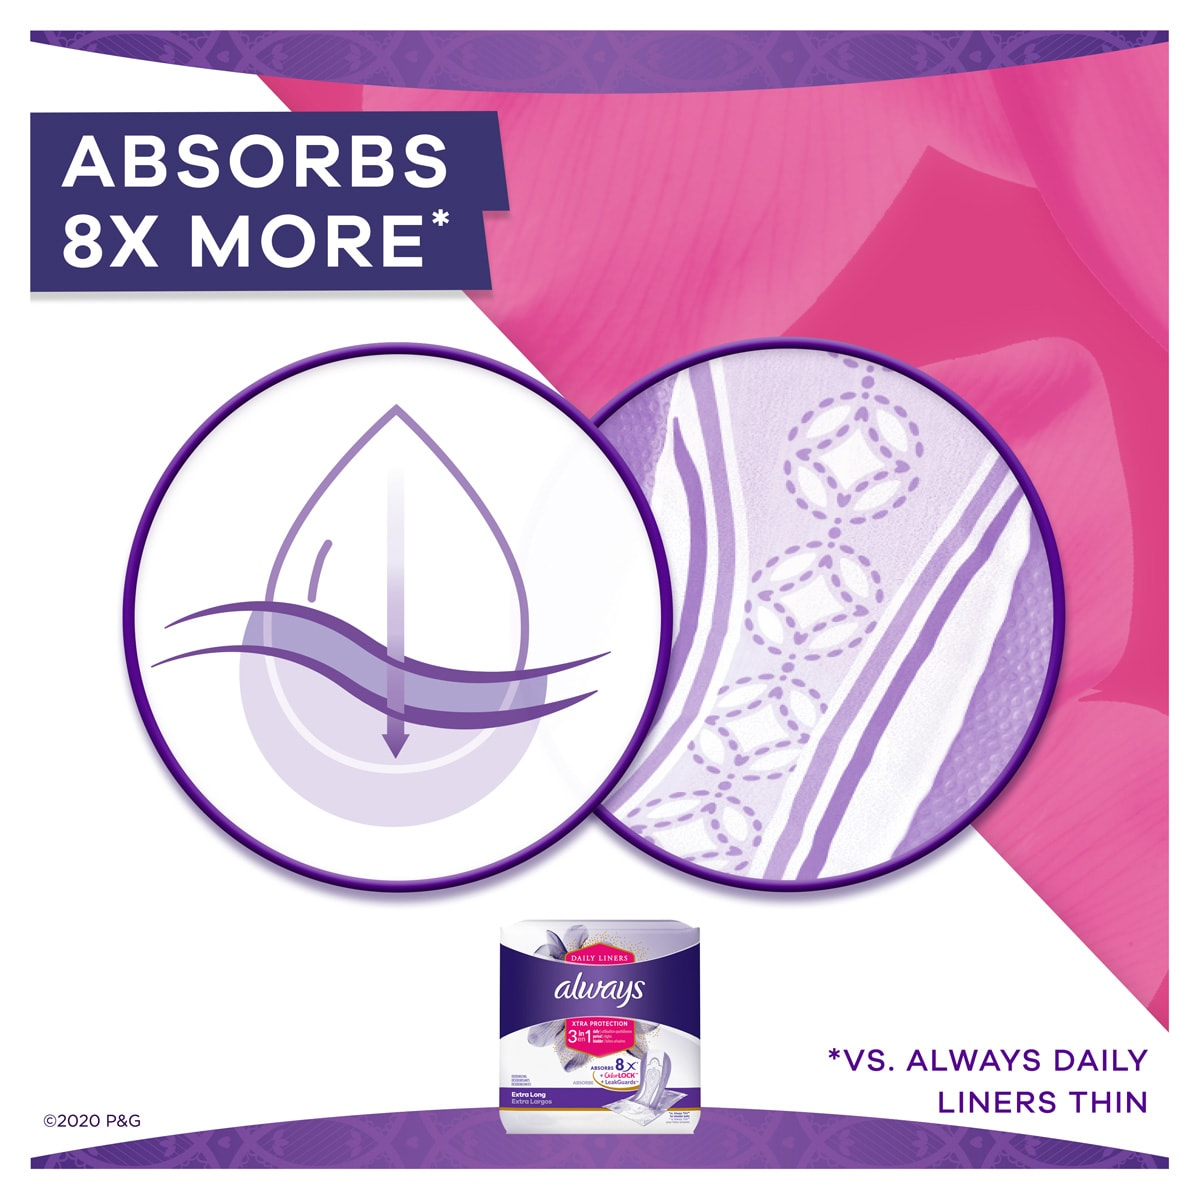 Always Xtra Protect 3 in 1 Extra Long Liners With LeakGuards Absorbs 8x More benefit